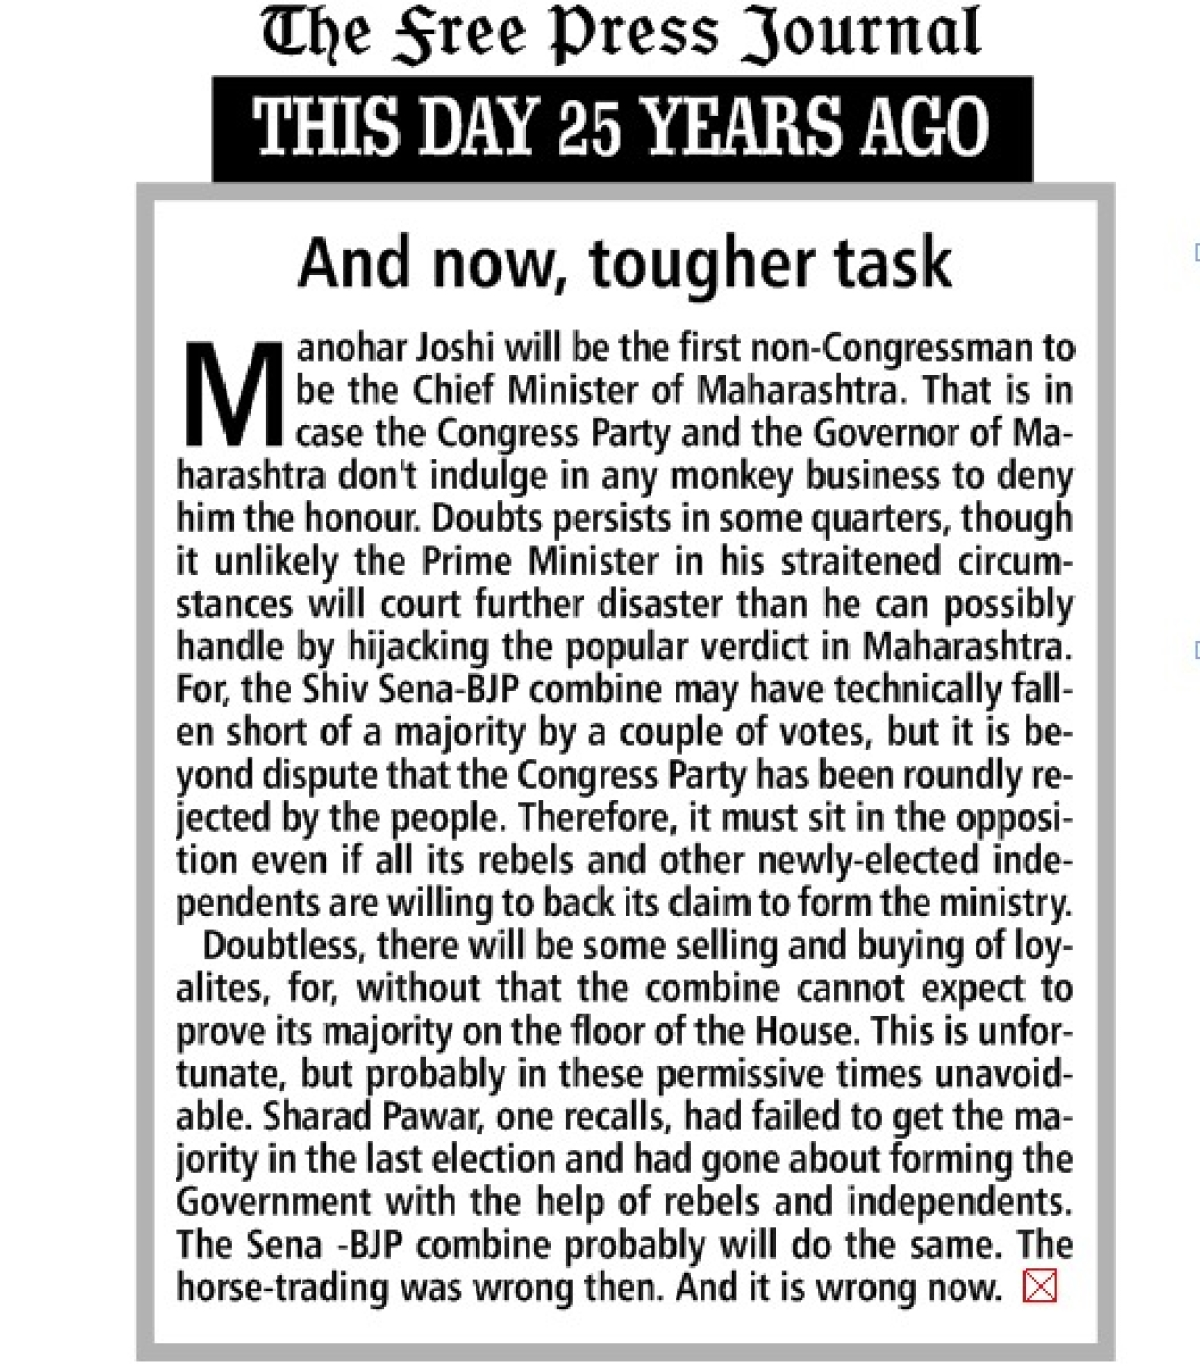 This day 25 years ago: And now, tougher task